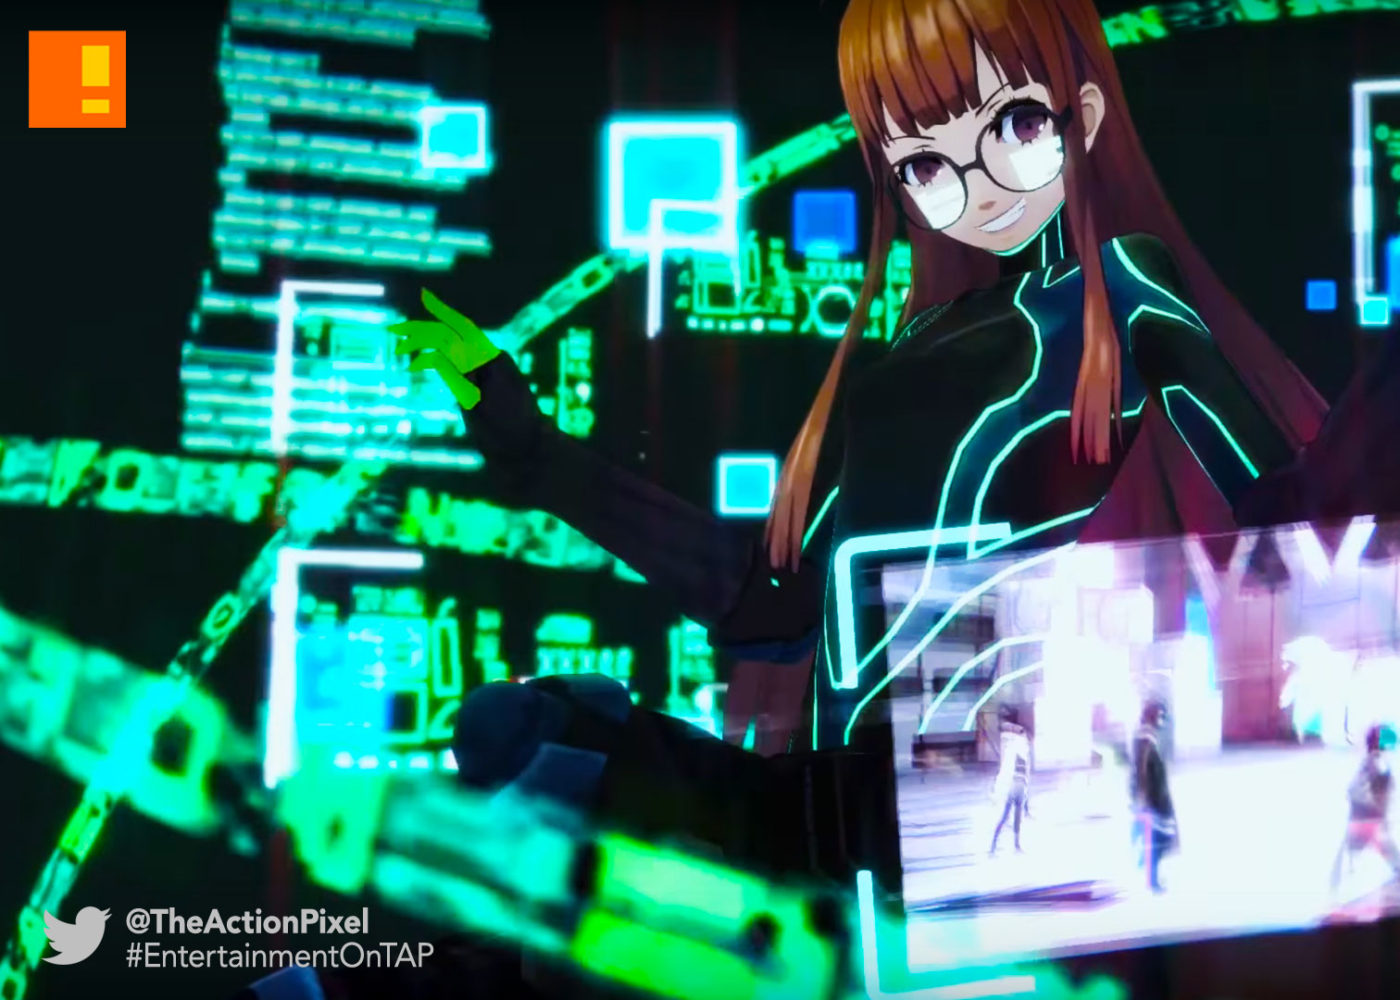 futaba, persona 5, trailer, entertainment on tap, atlus, the action pixel, @theactionpixel